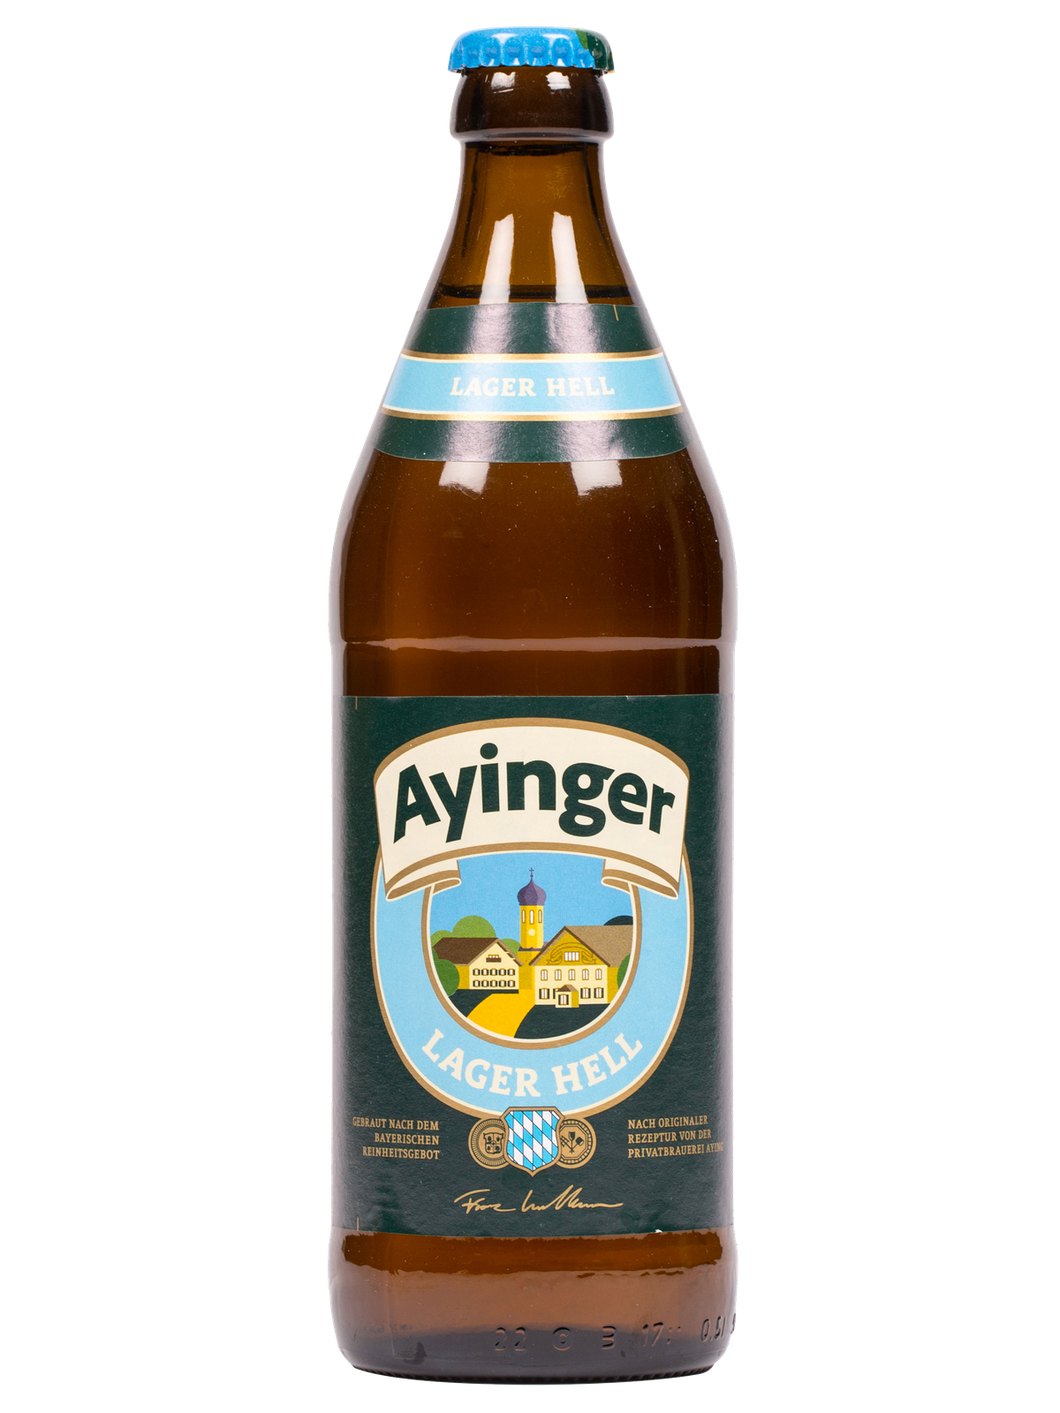 Ayinger Lager Hell - Ayinger Privatbrauerei - Lager Hell, 4.9%, 500ml Bottle